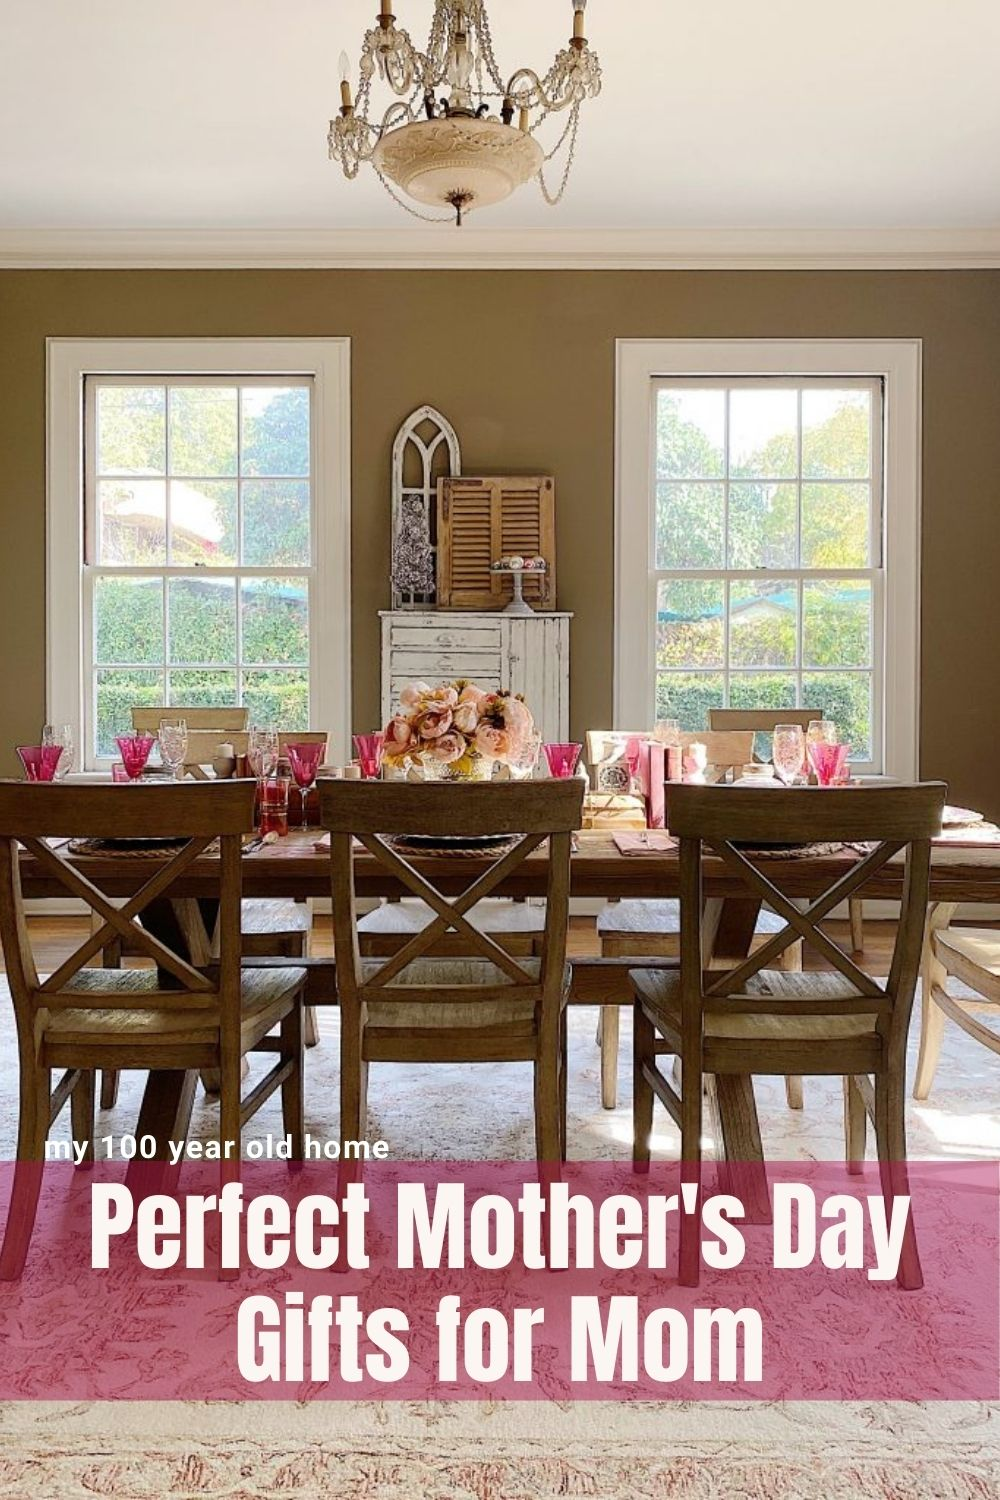 There are only a few weeks until Mother's Day so I thought I would share some fun Mother's Day gifts for all kinds of moms!